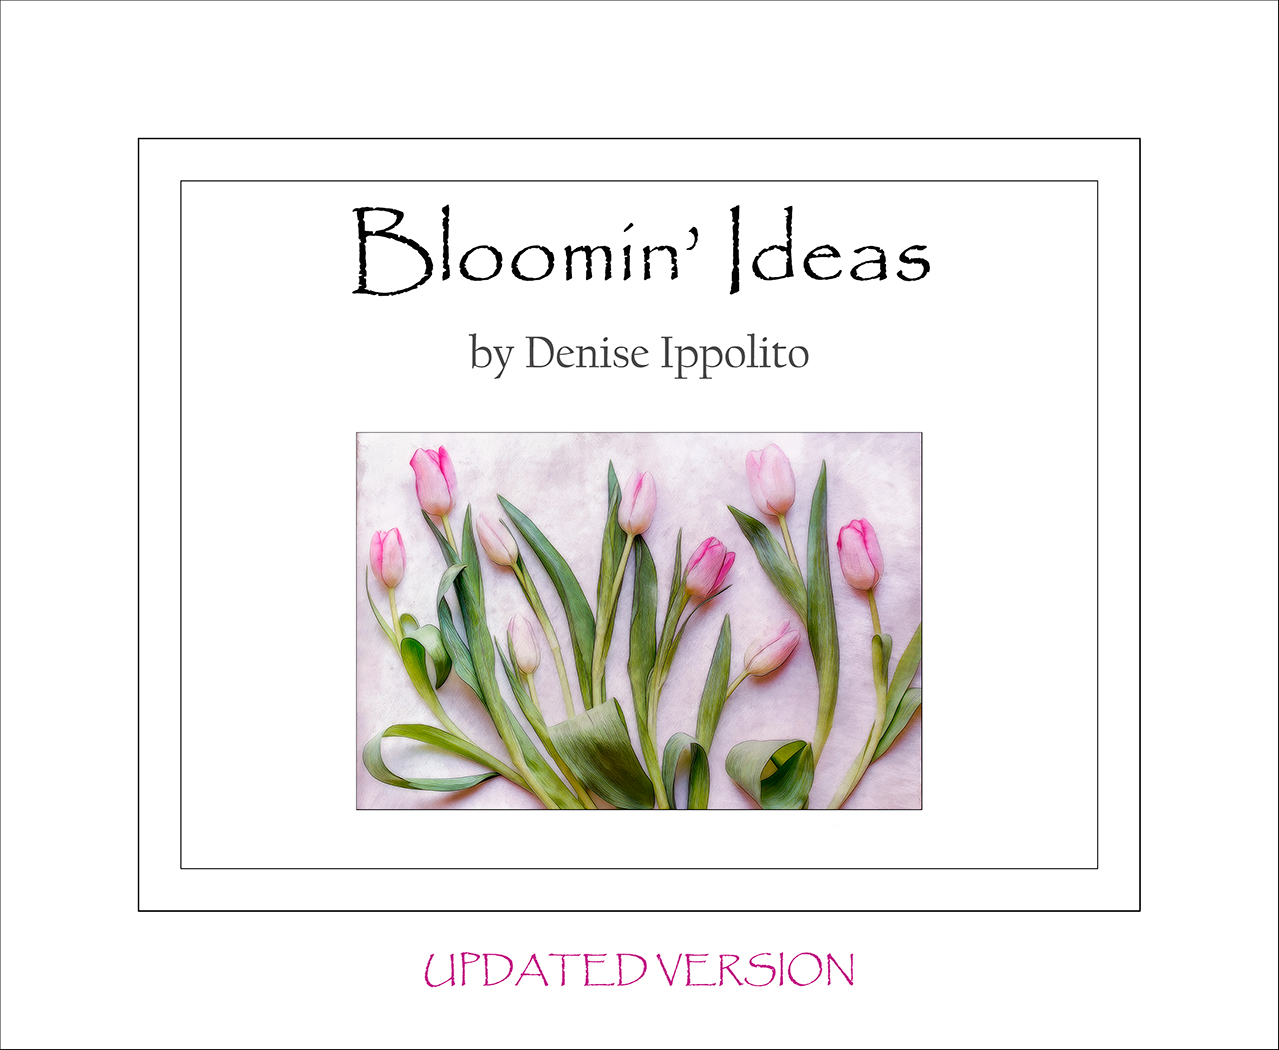 Bloomin'-Ideas-updated.jpg